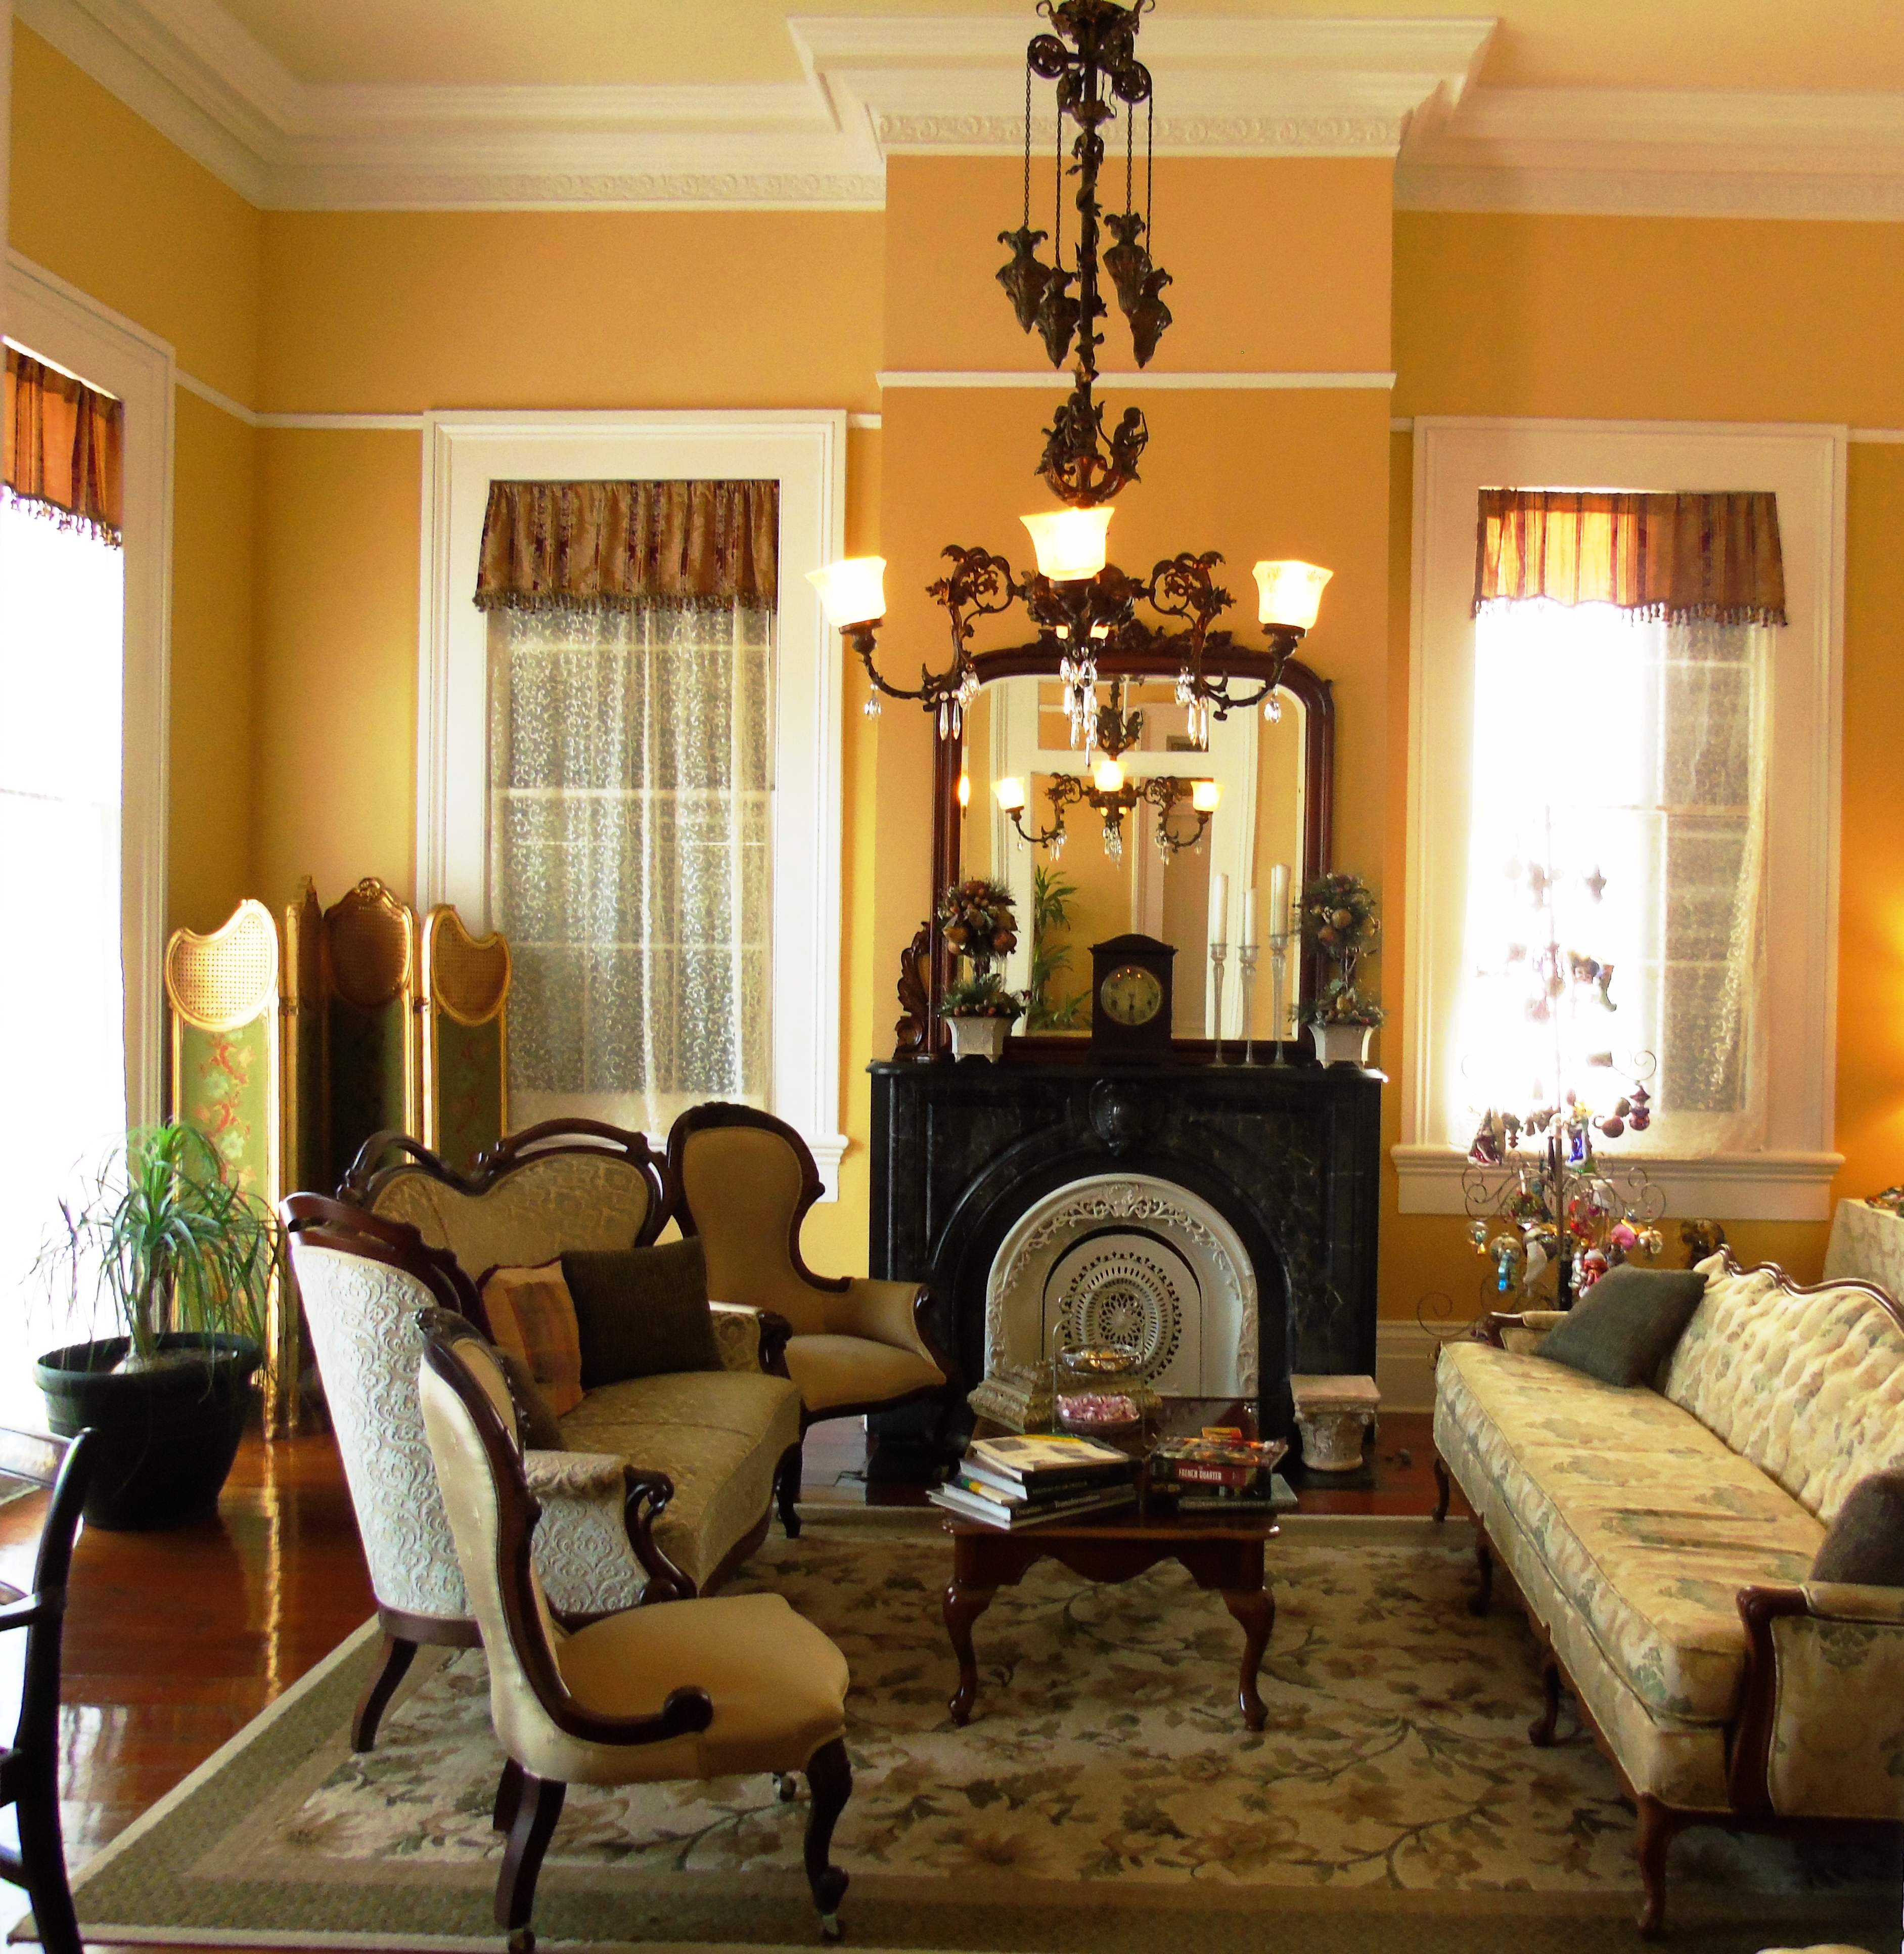 New Orleans, marble, Ashton's B&B, B&B, luxury,